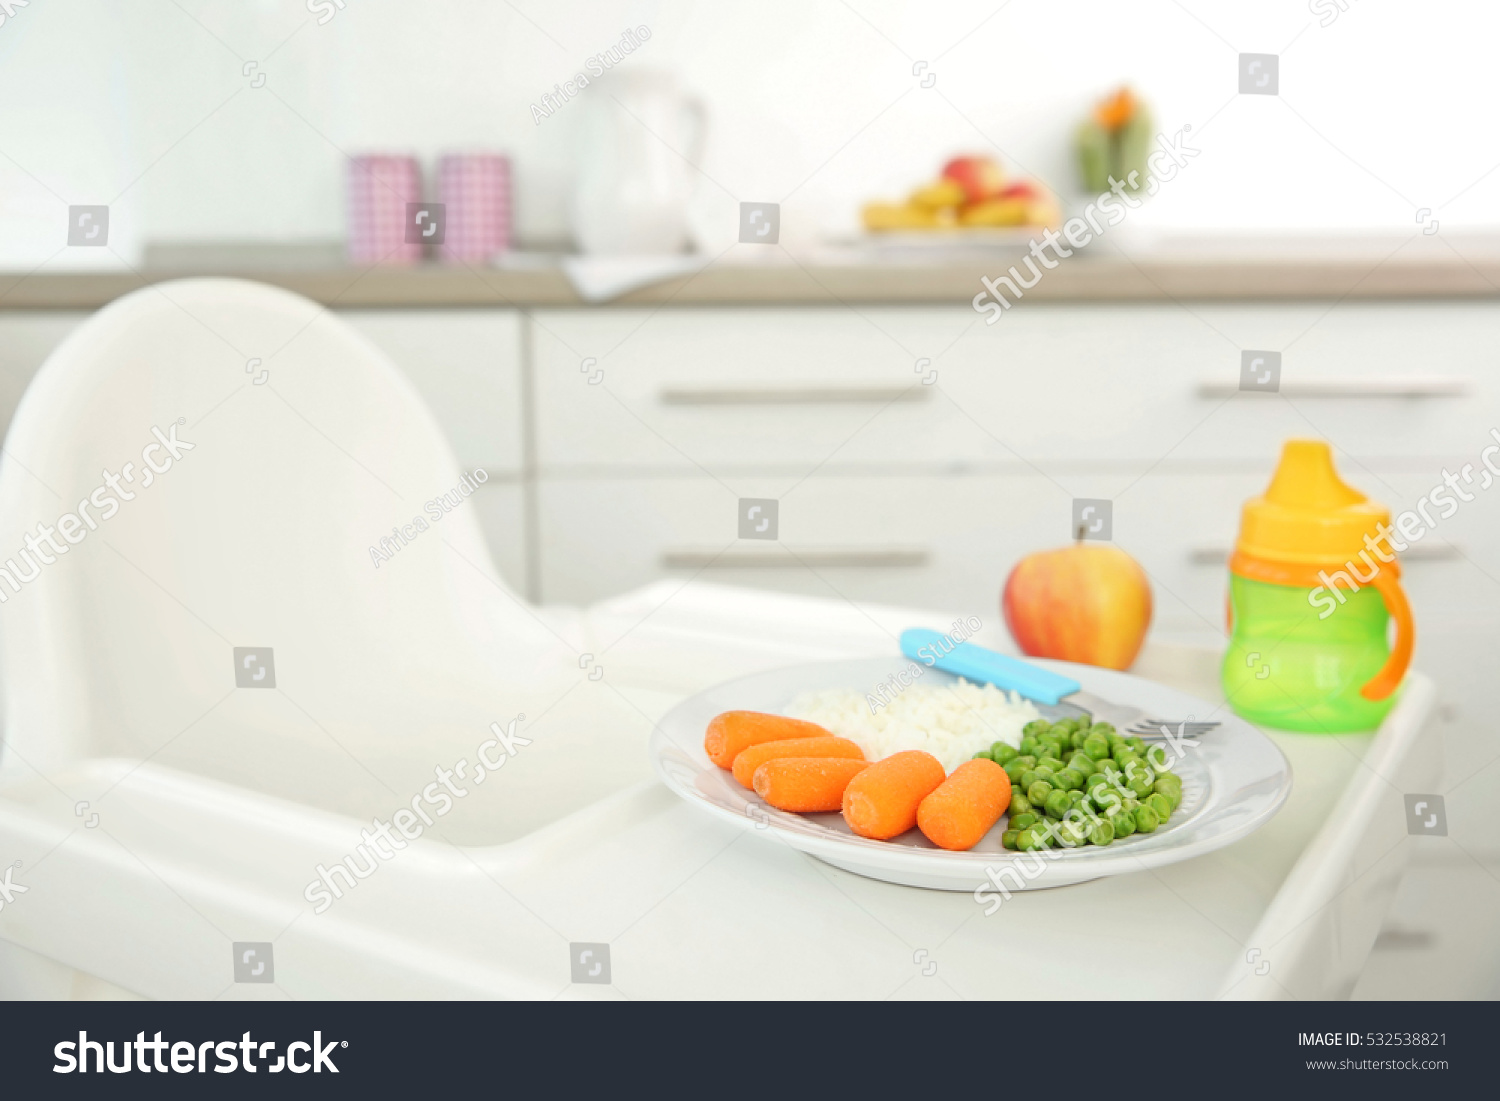 highchair healthy baby food home child 532538821 shutterstock. Black Bedroom Furniture Sets. Home Design Ideas